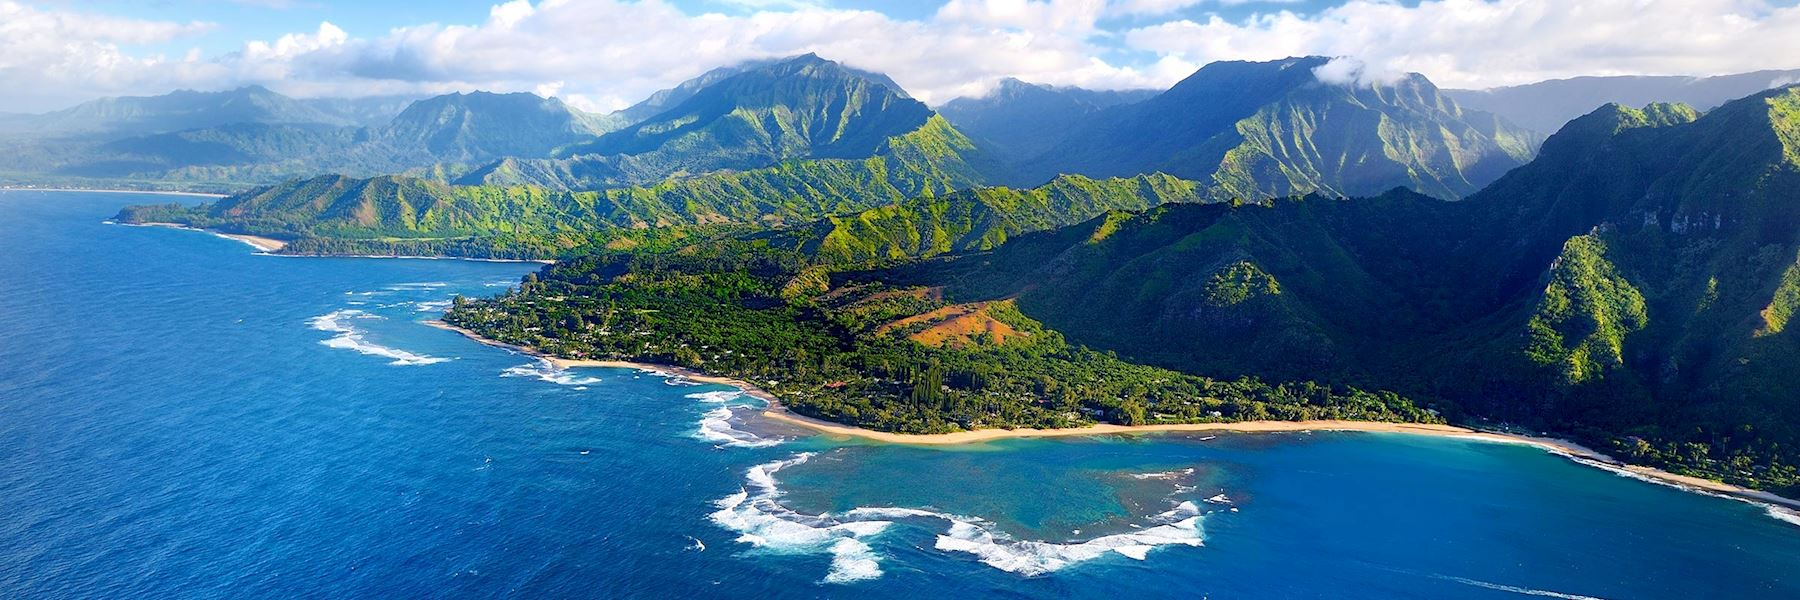 Best Time to Visit Hawaii | Climate Guide | Audley Travel